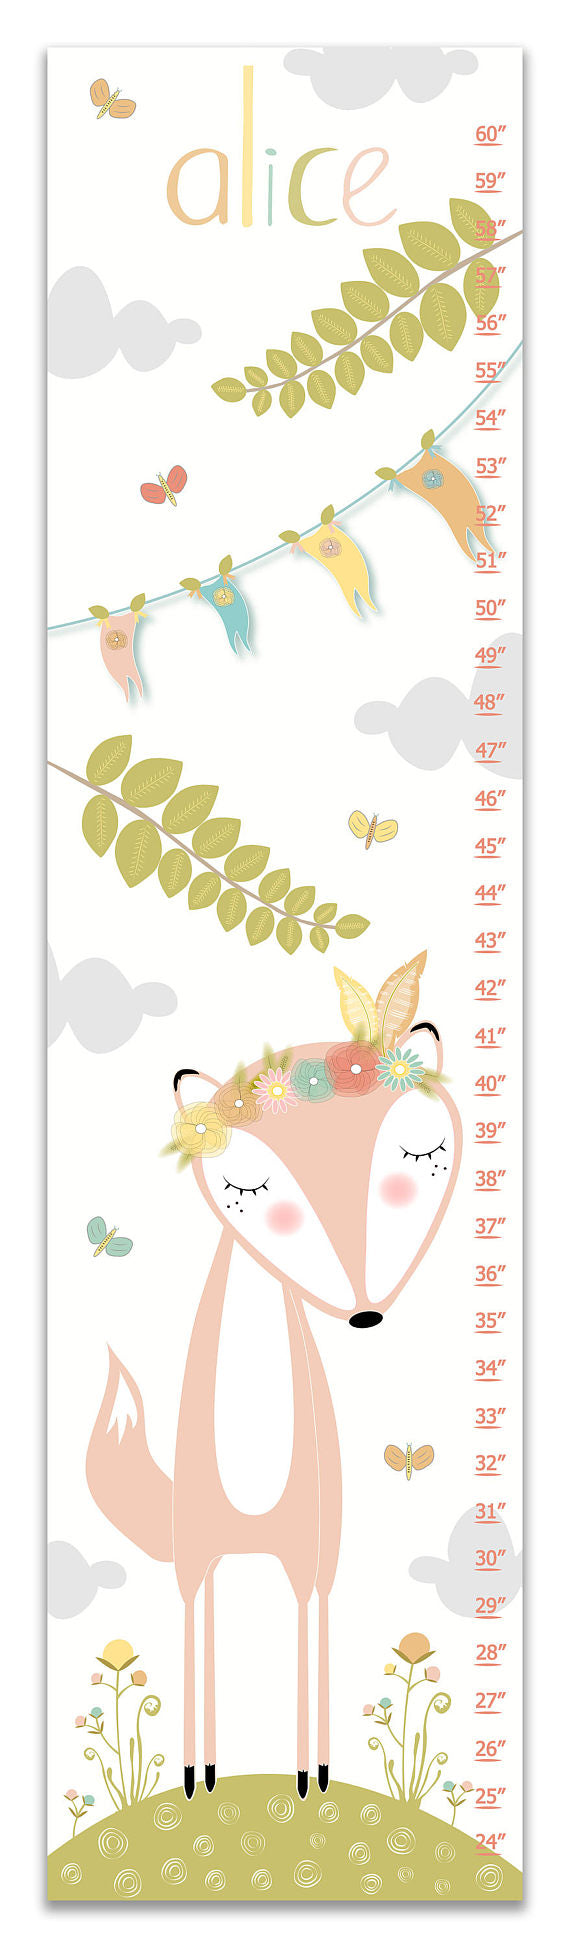 Infant girl weight chart gallery free any chart examples who baby girl growth chart choice image free any chart examples baby girls weight chart gallery nvjuhfo Choice Image